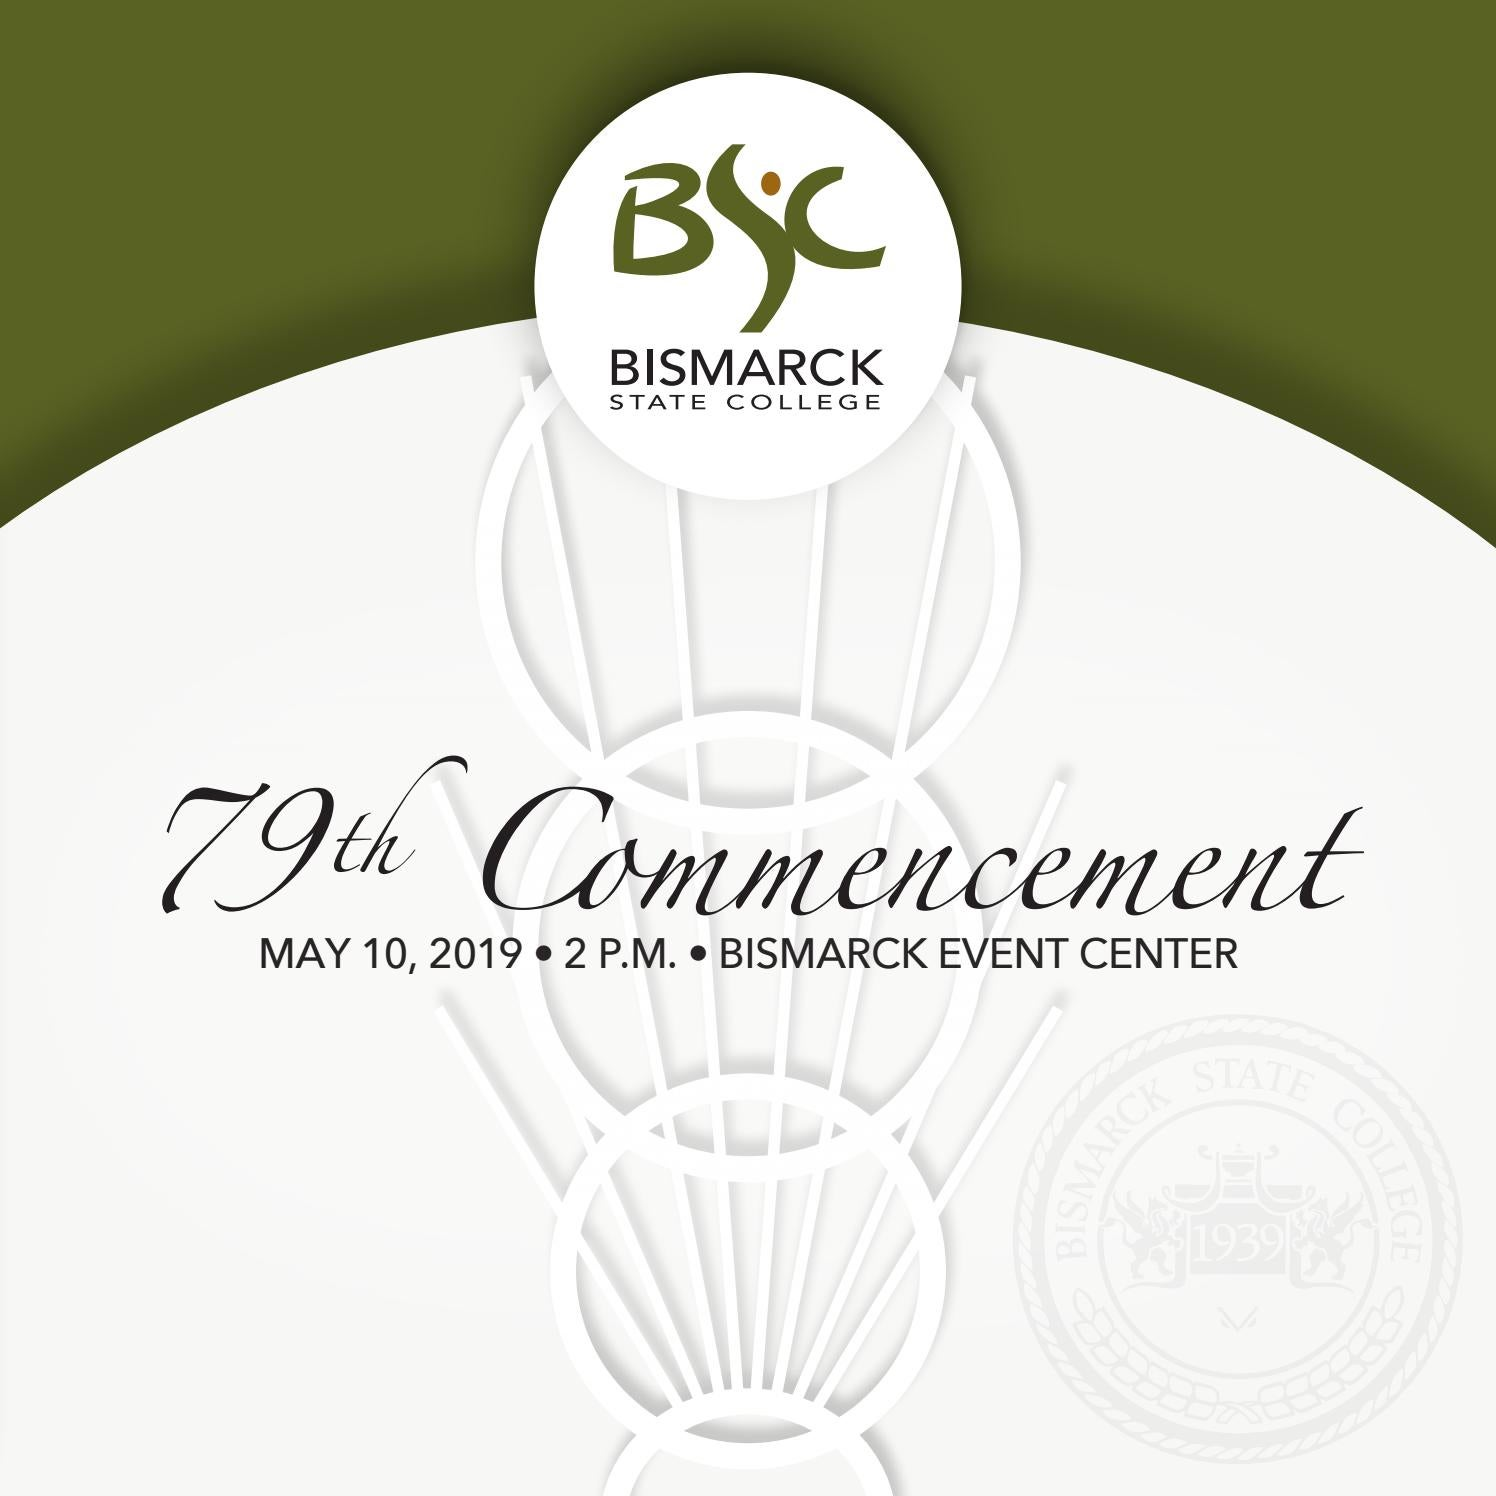 2019 Commencement Program by Bismarck State College - issuu